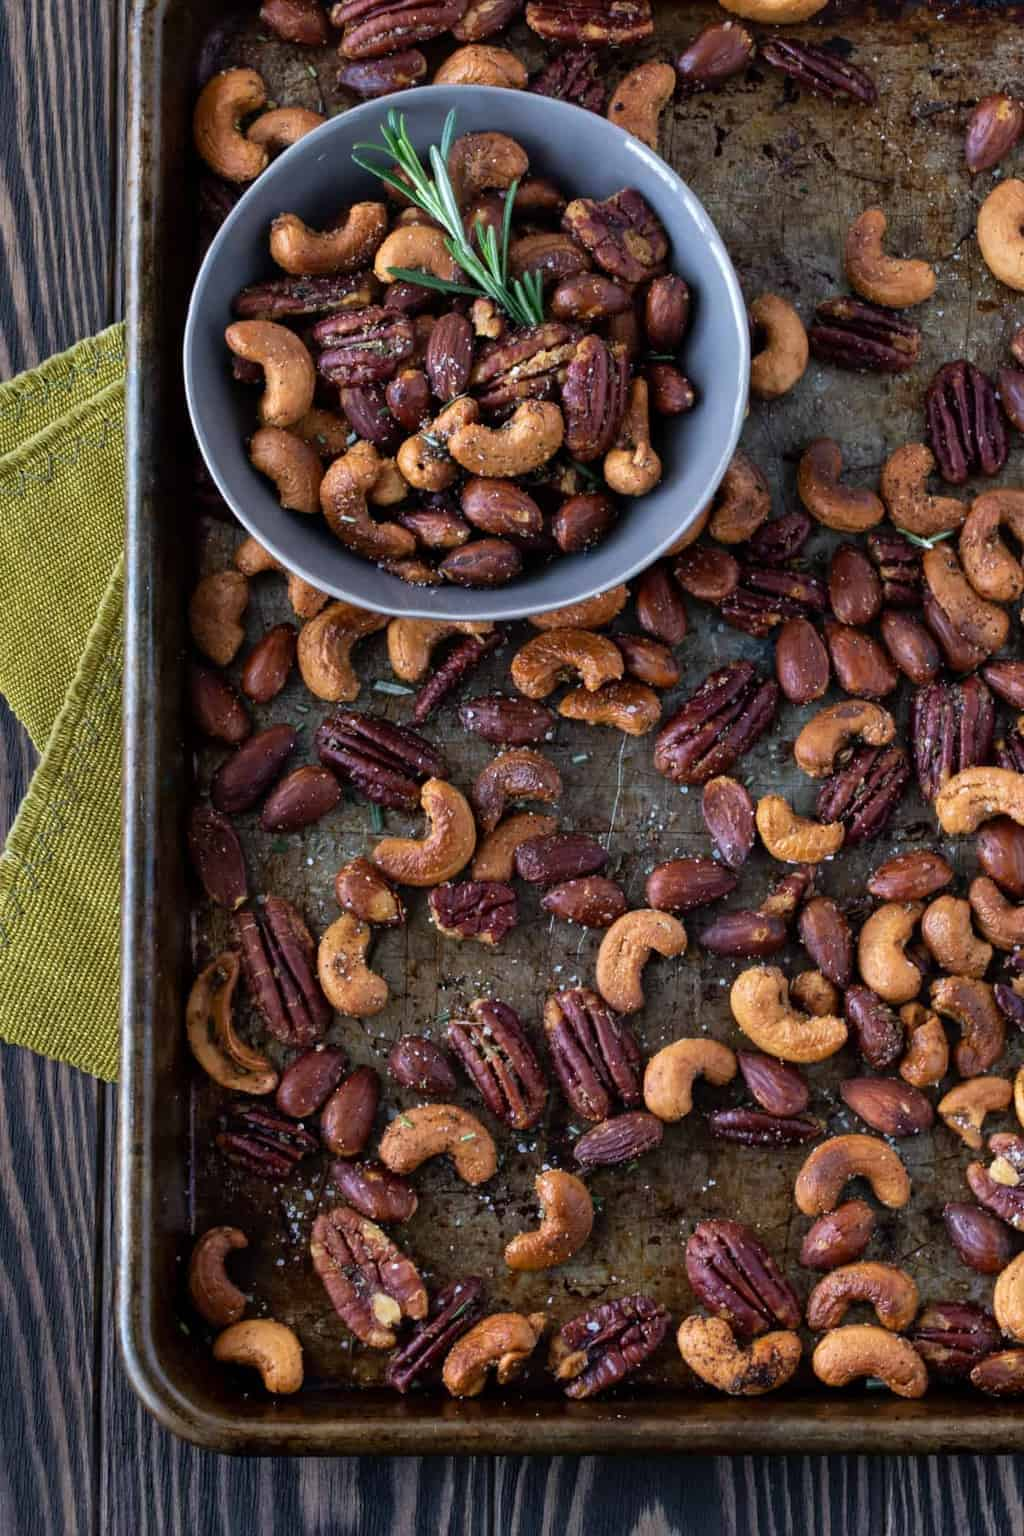 Chipotle and Rosemary Roasted Nuts on a sheet pan with a small bowl filled with nuts.